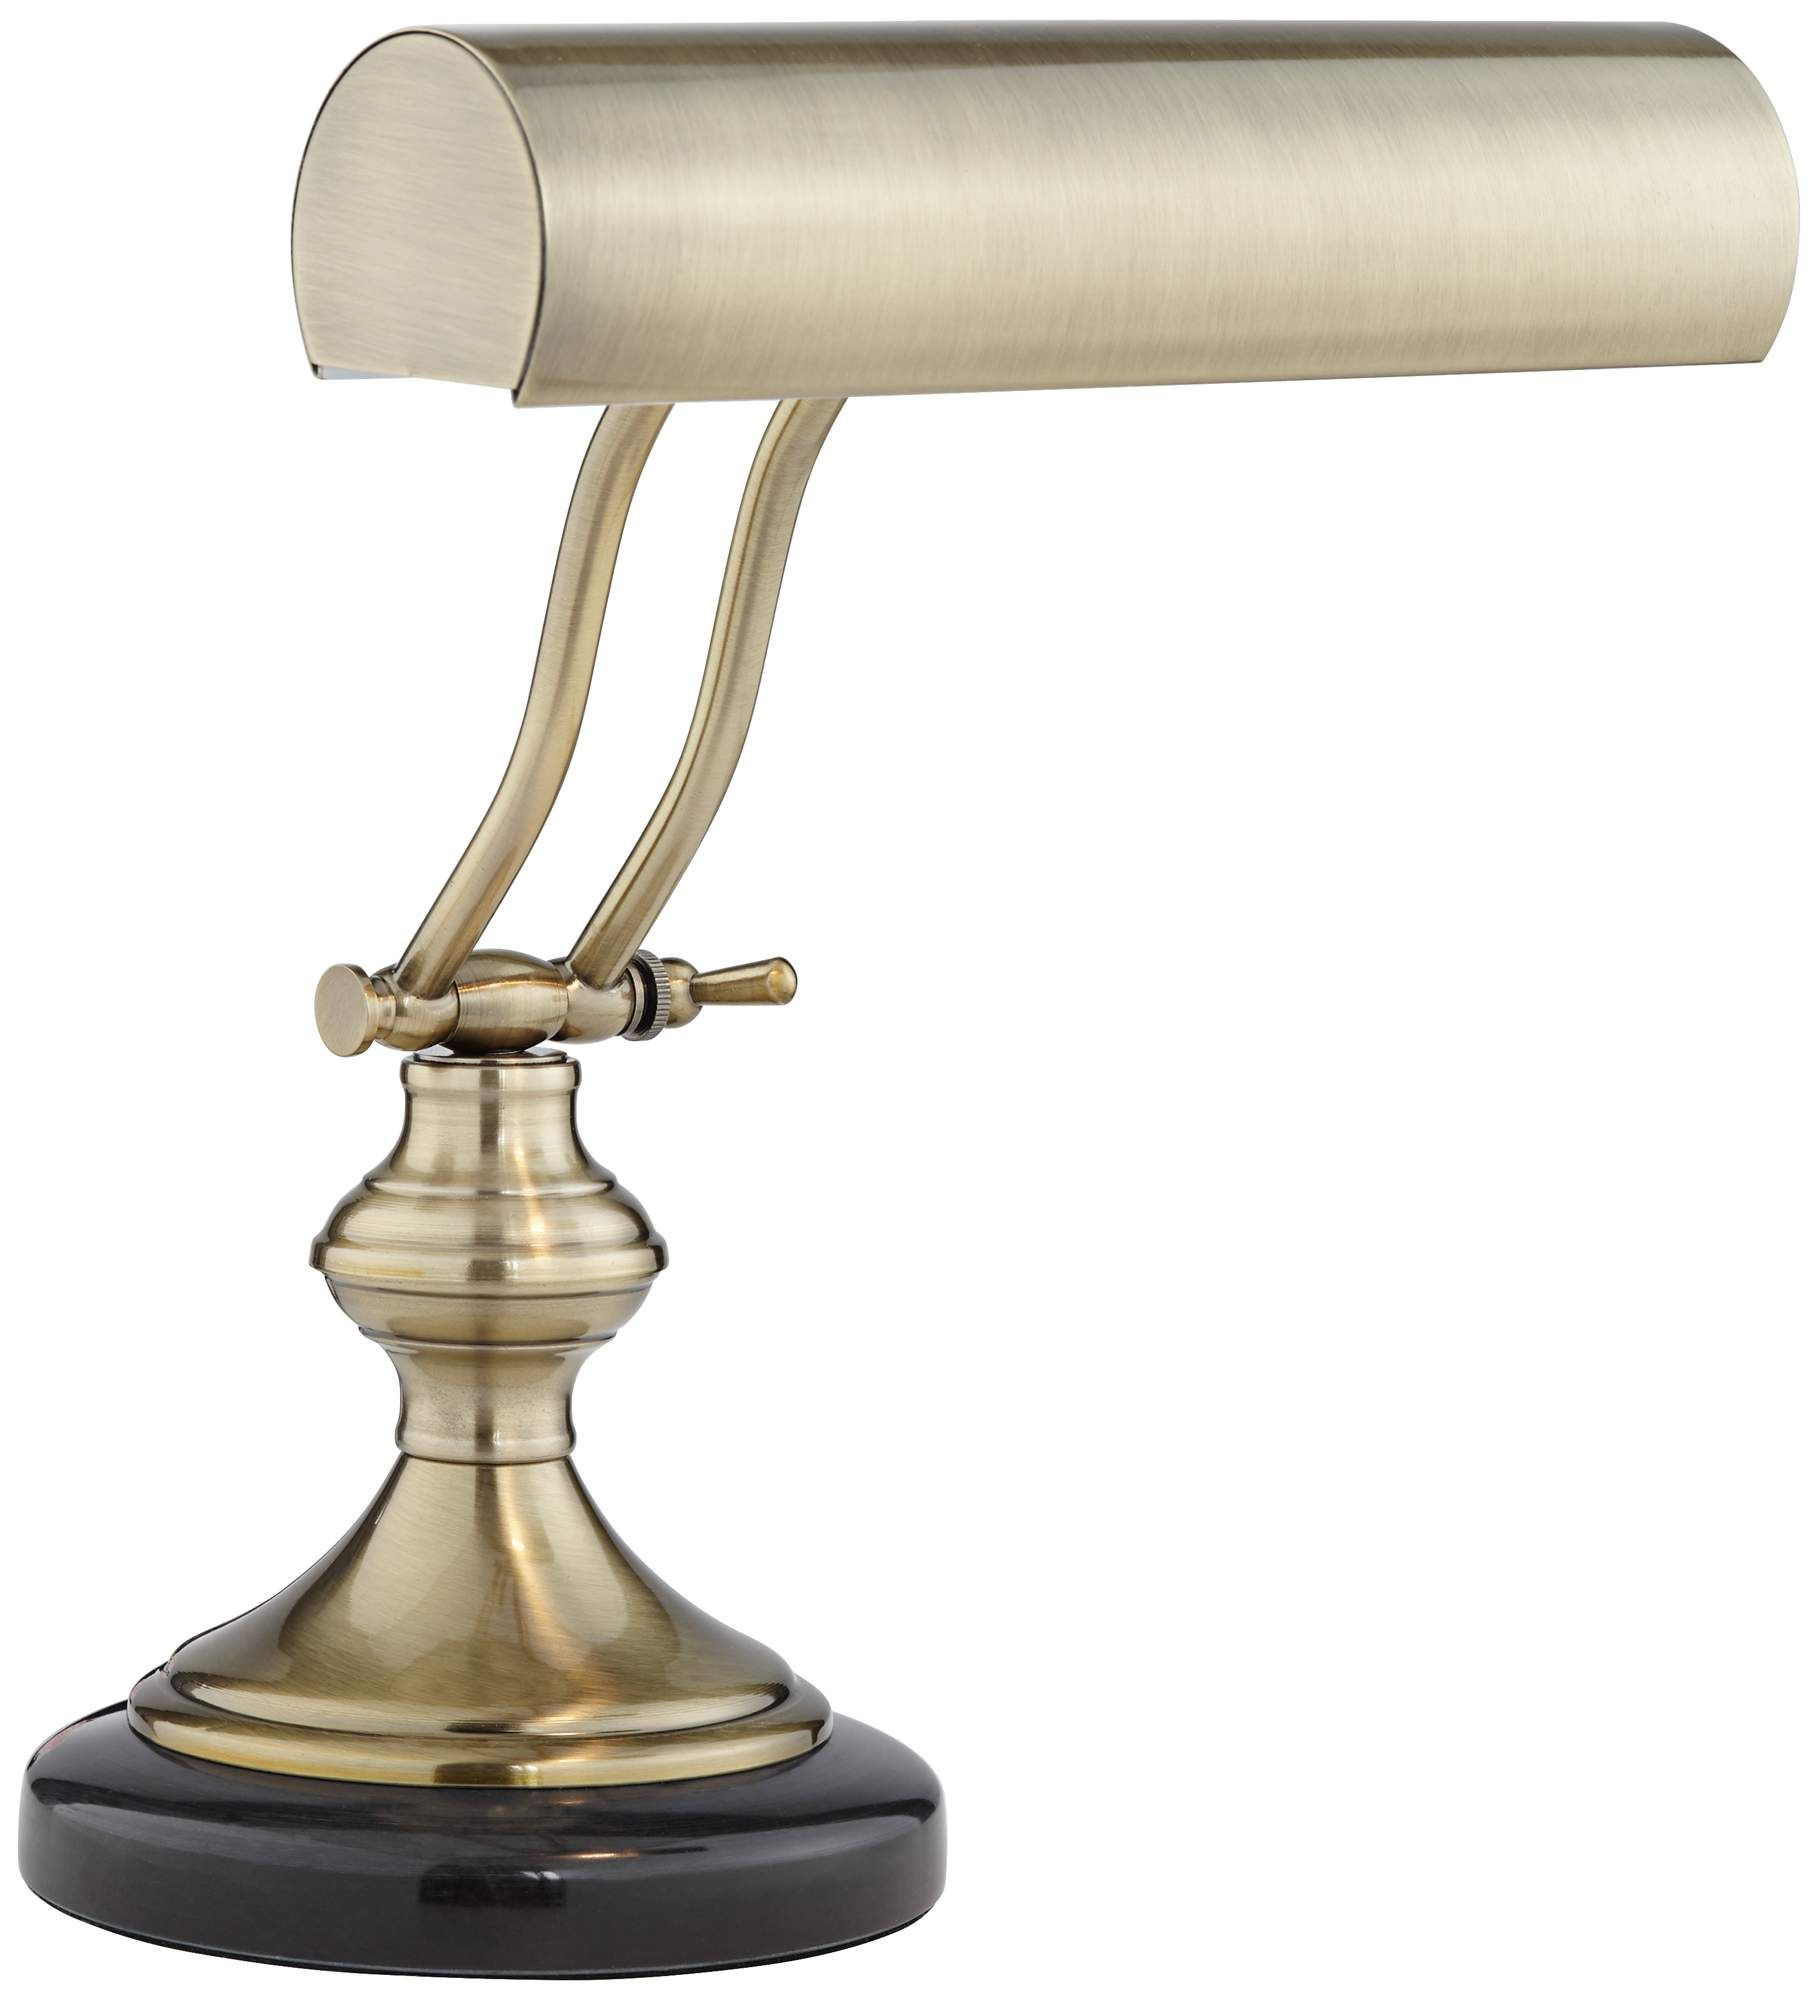 Antique Brass With Marble Piano Desk Lamp by Regency Hill is